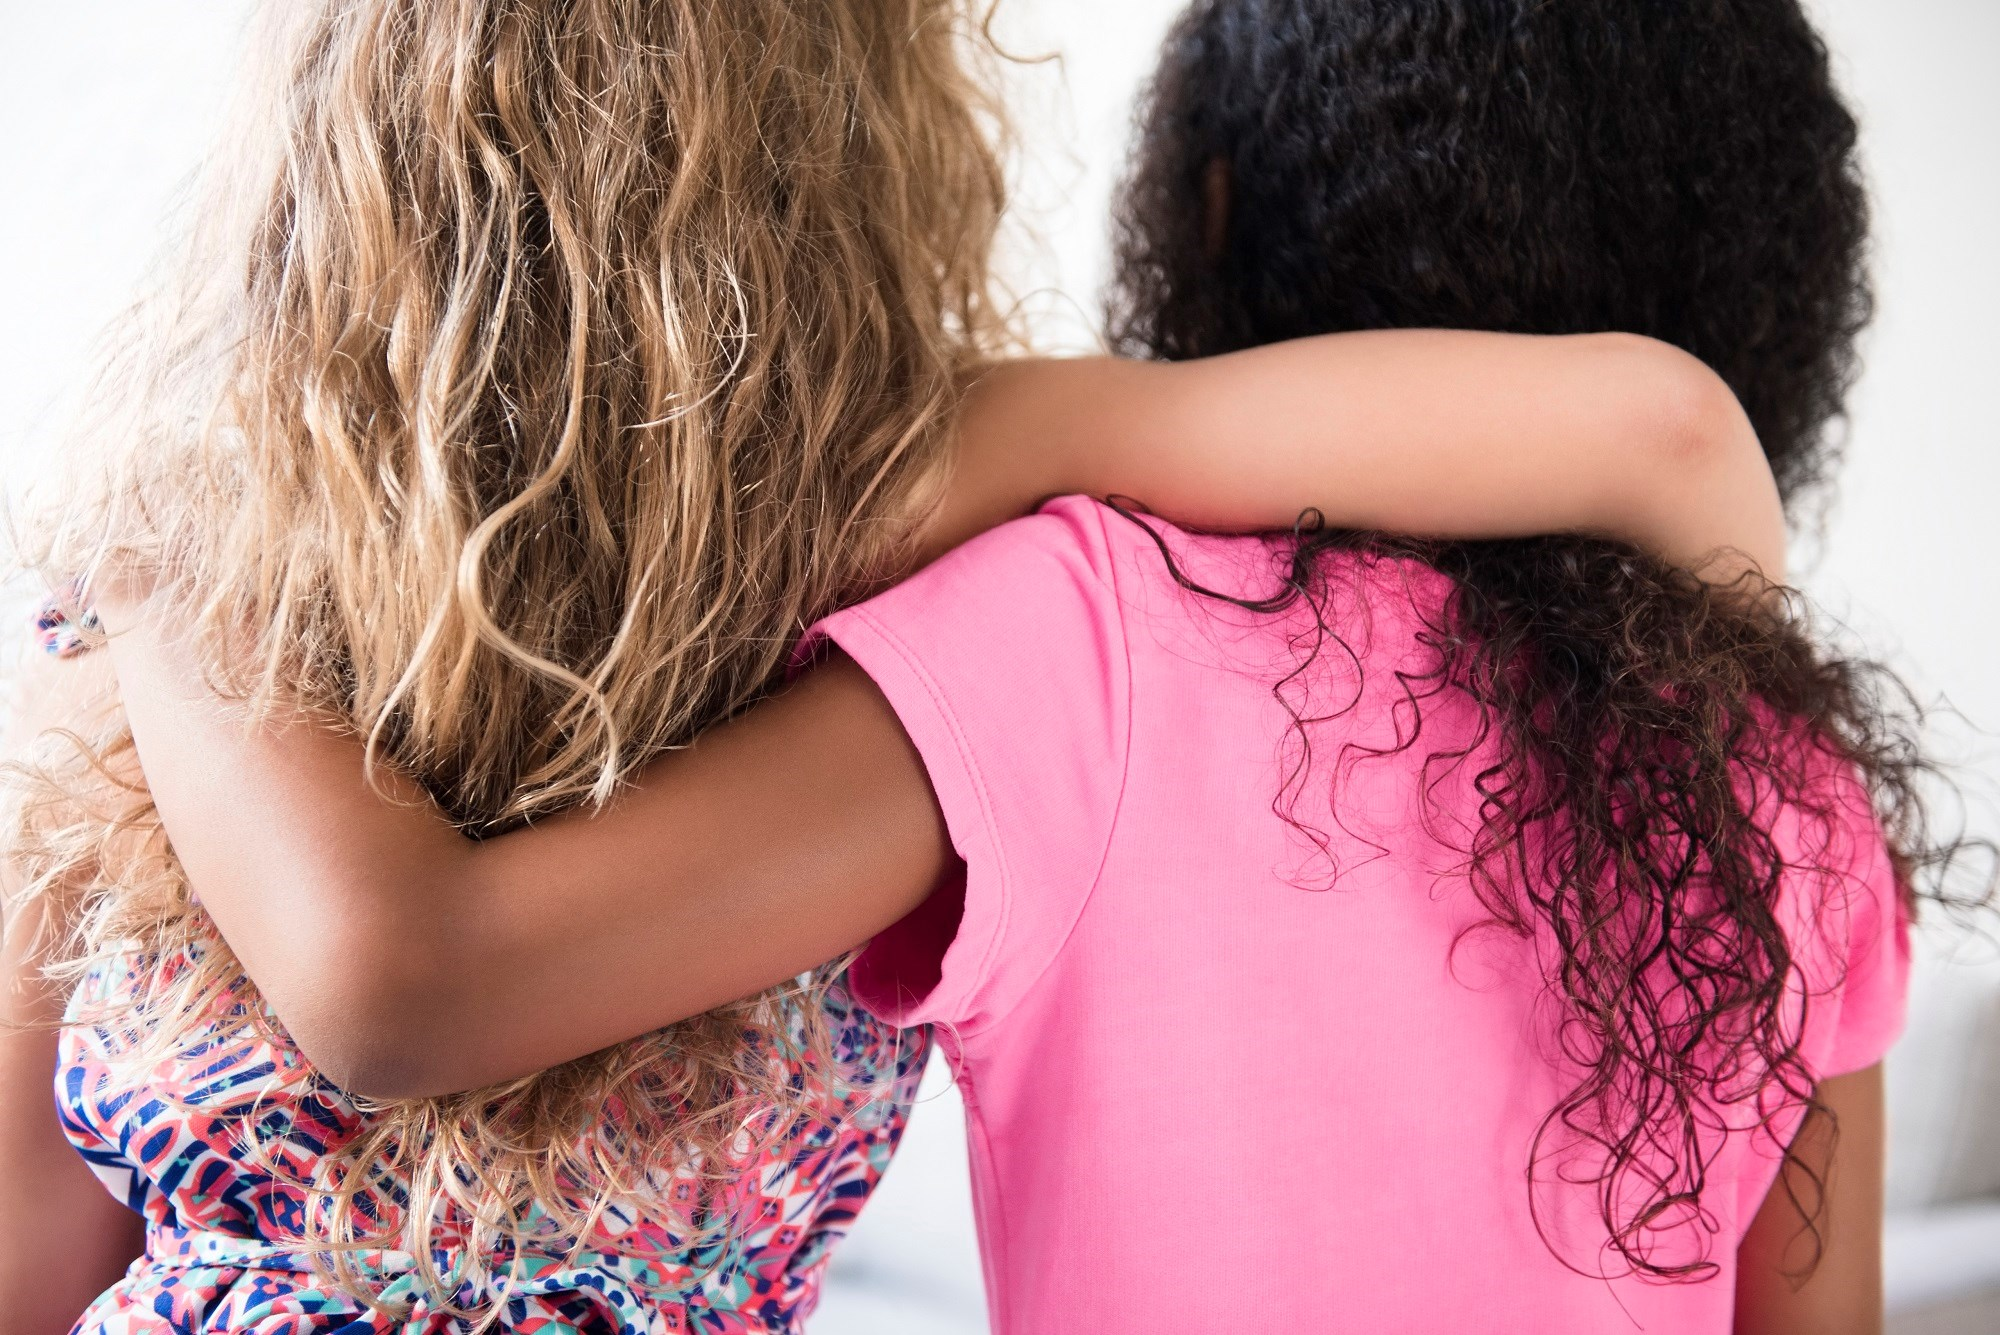 Individuals with high levels of childhood adversity had decreased family and friend support, which suggests that high levels of childhood adversities harm the ability to form social networks.